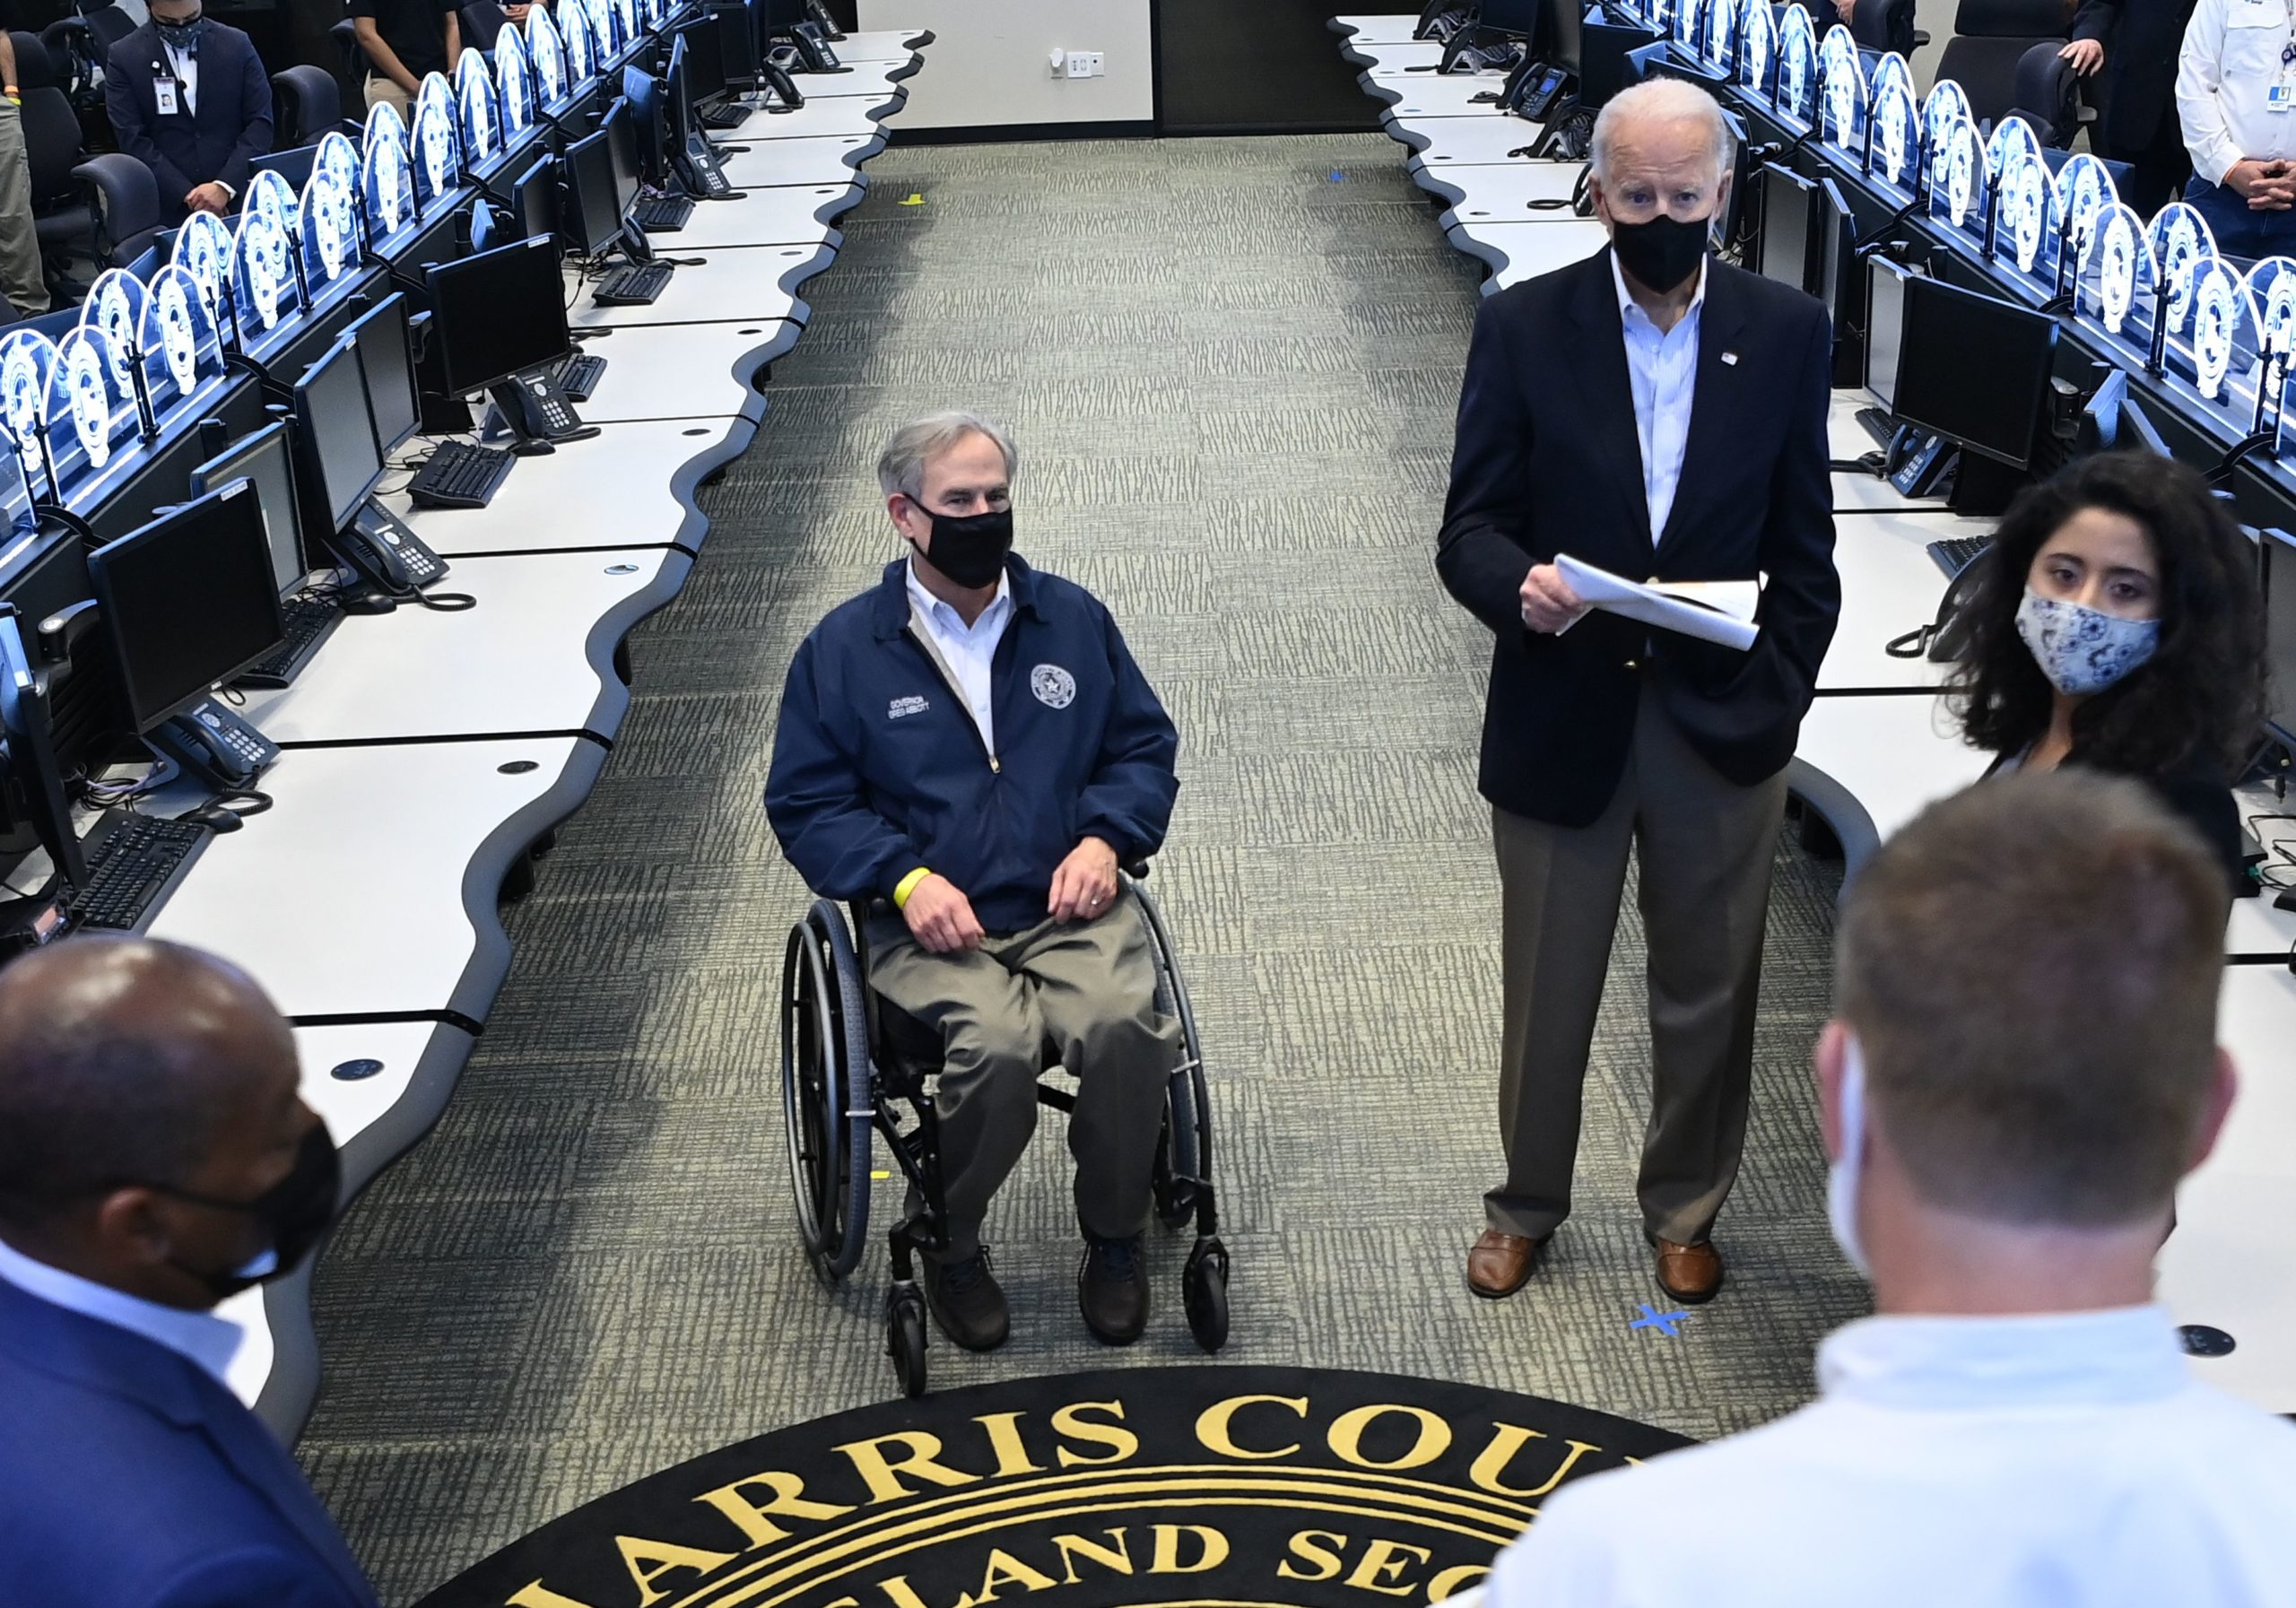 US President Joe Biden and Texas Governor Greg Abbott (L) listen to officials at the Harris County Emergency Operations Center in Houston, Texas on February 26, 2021. - Biden is visiting Houston, Texas following severe winter storms which left much of the state without electricity for days. (Photo by MANDEL NGAN/AFP via Getty Images)